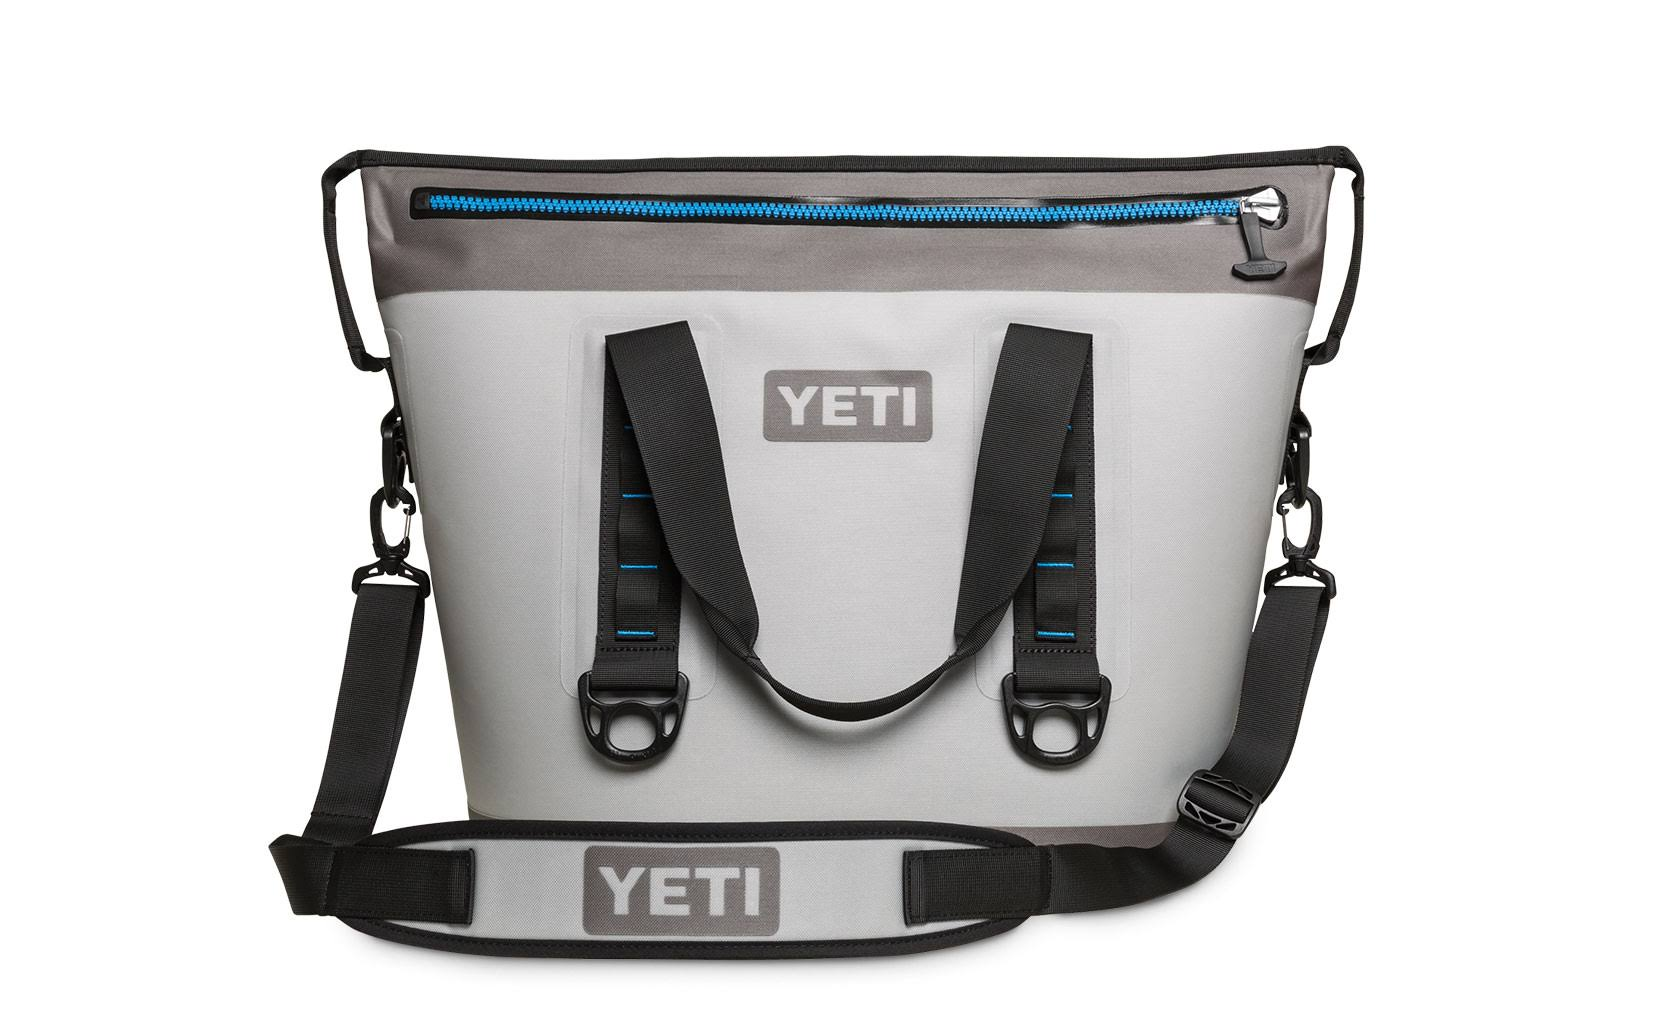 Yeti Hopper Two 30 Portable Cooler - Fog Gray